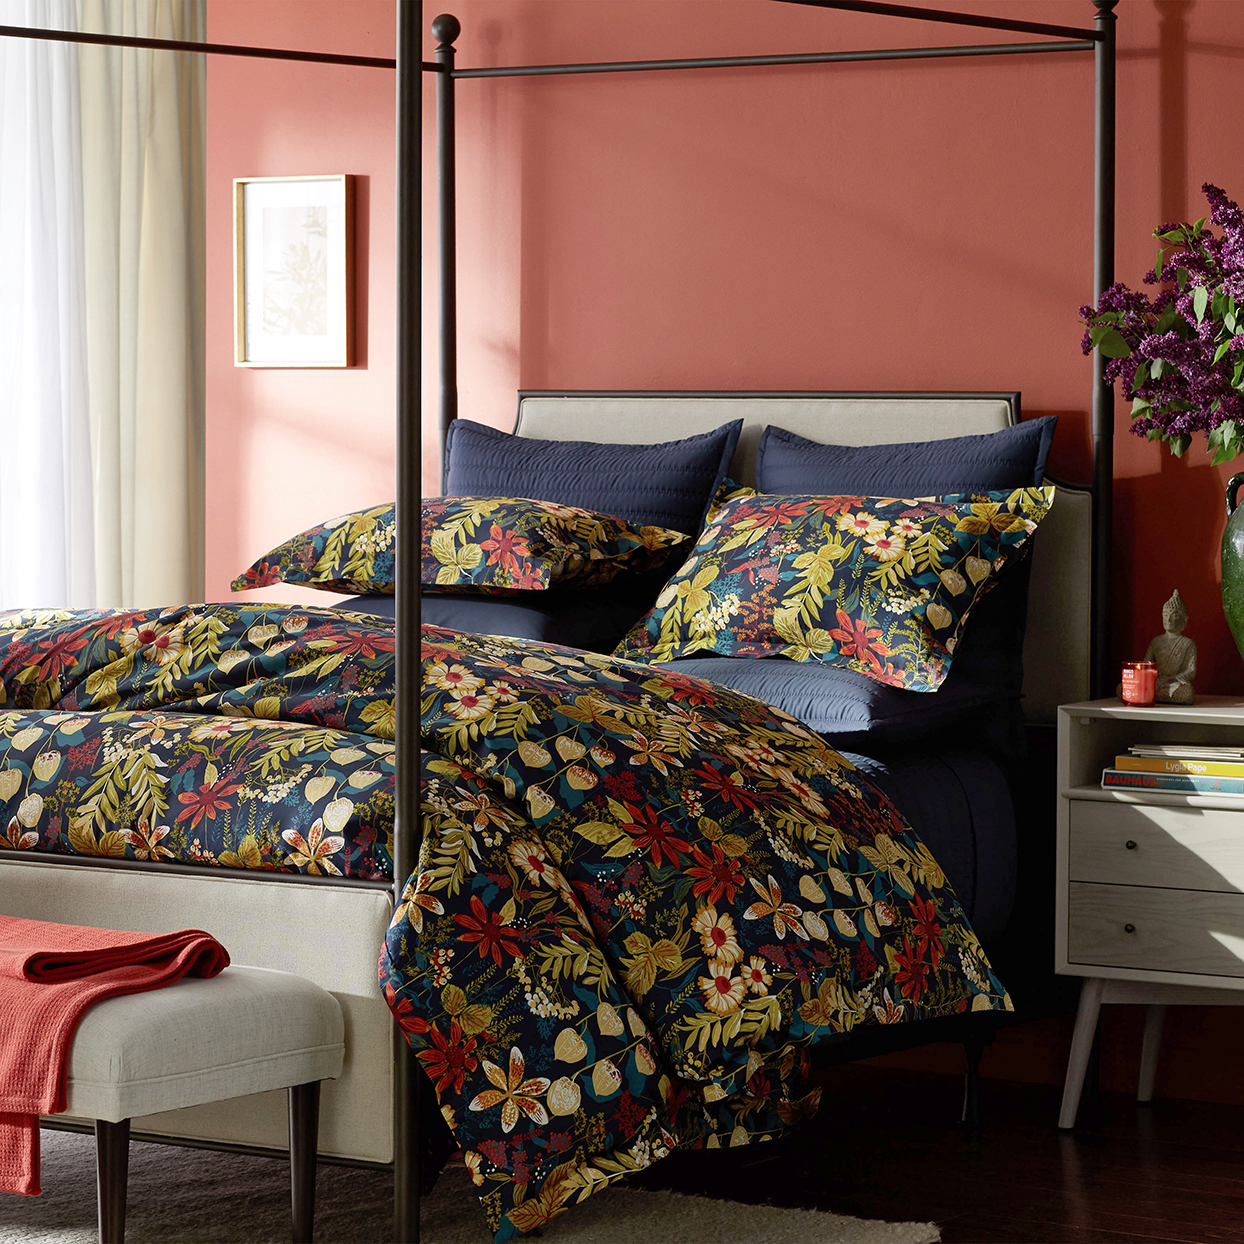 red bedroom with multi-colored floral bedding